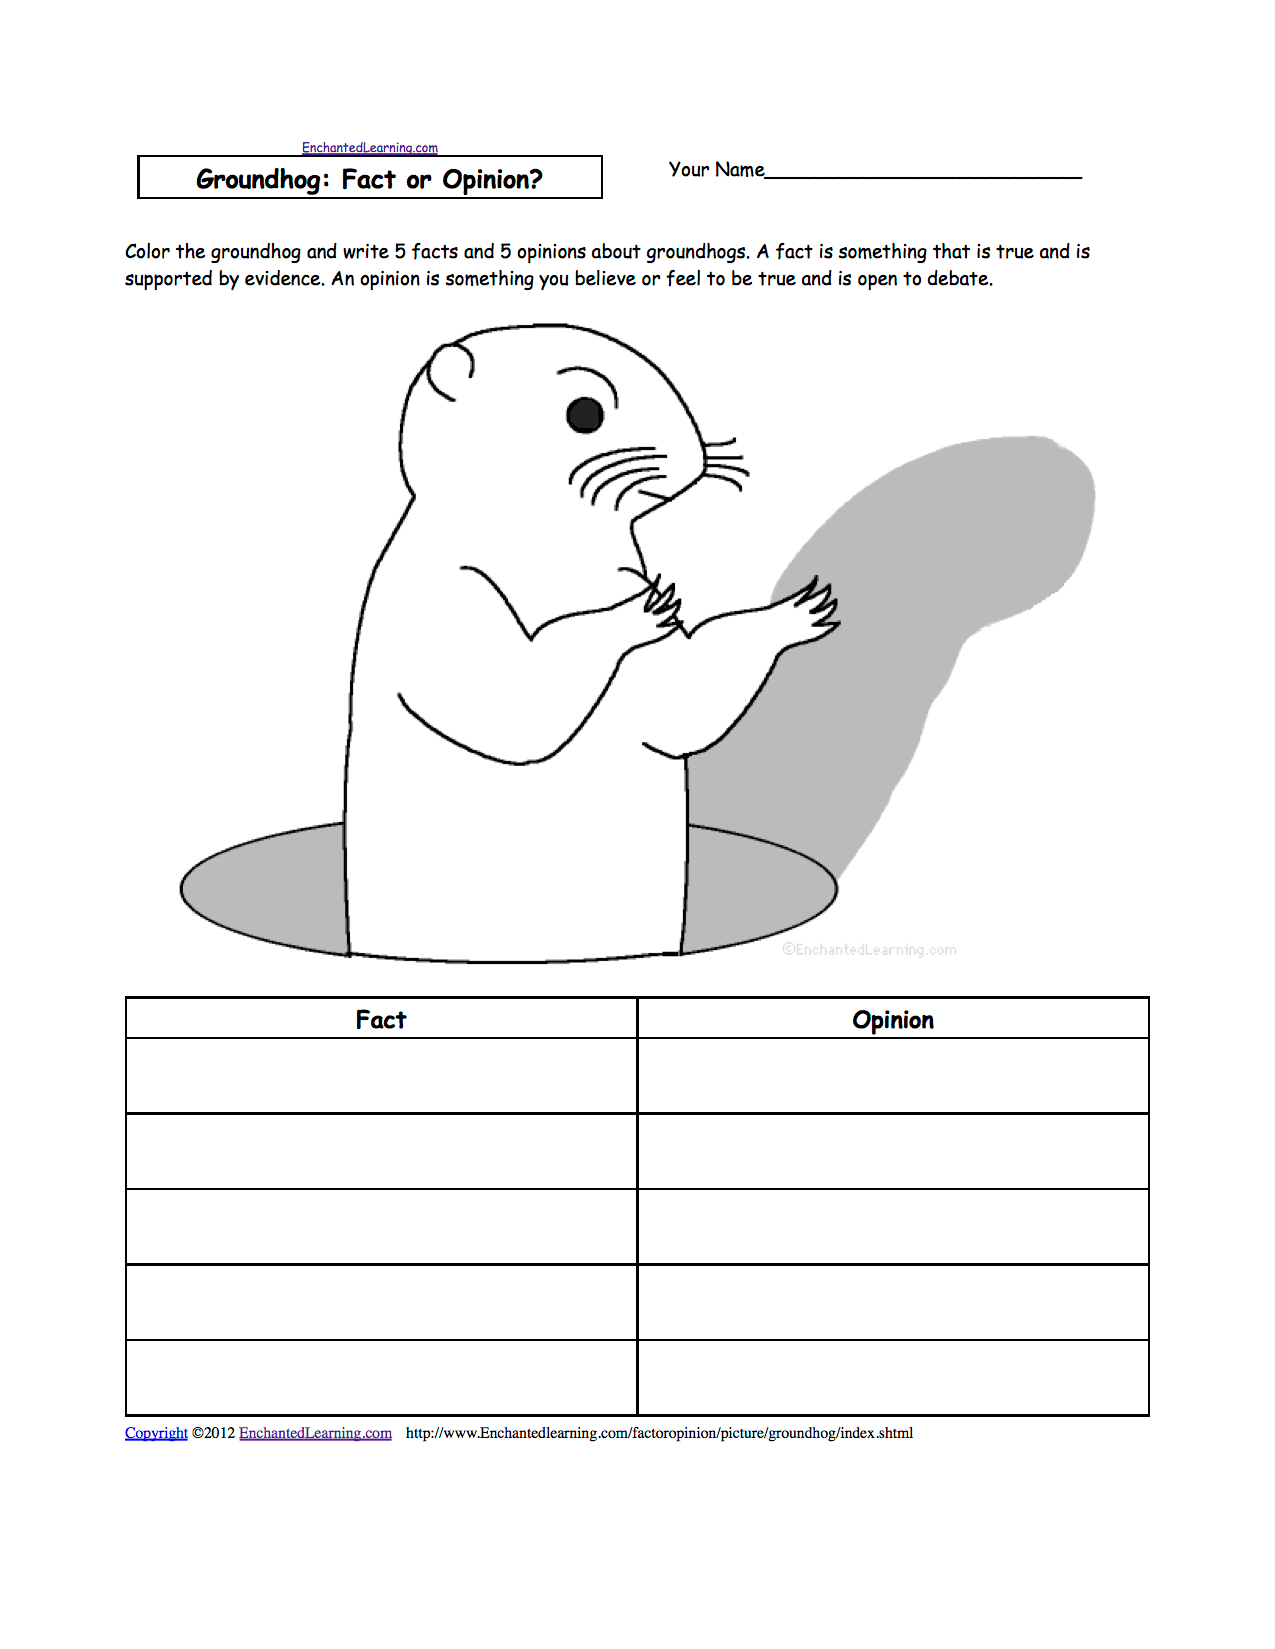 Groundhog Day Pattern Worksheets